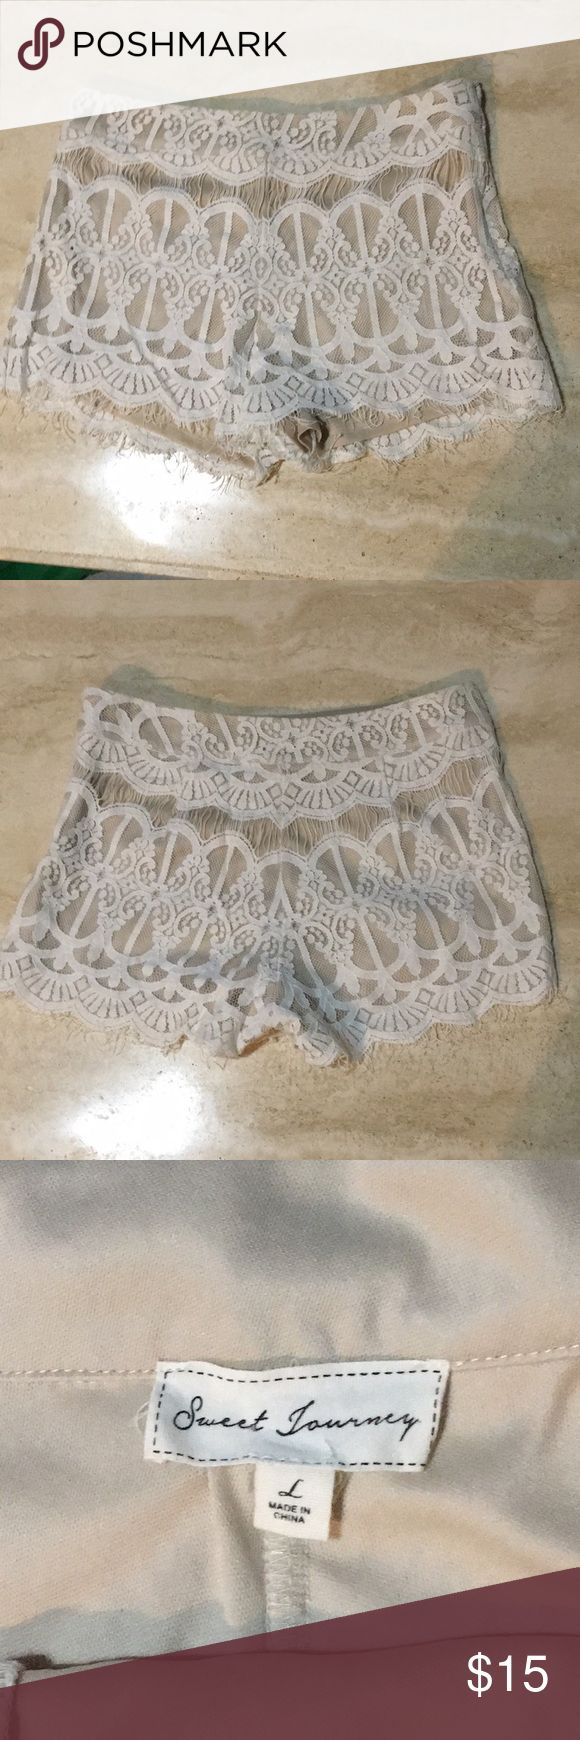 White And Cream Lace Shorts/Size Large These white and cream lace shorts are a cute staple item that every wardrobe needs. There is a zipper on the side. They have only been worn a few times and are in great condition! Let me know if you have any questions! Shorts